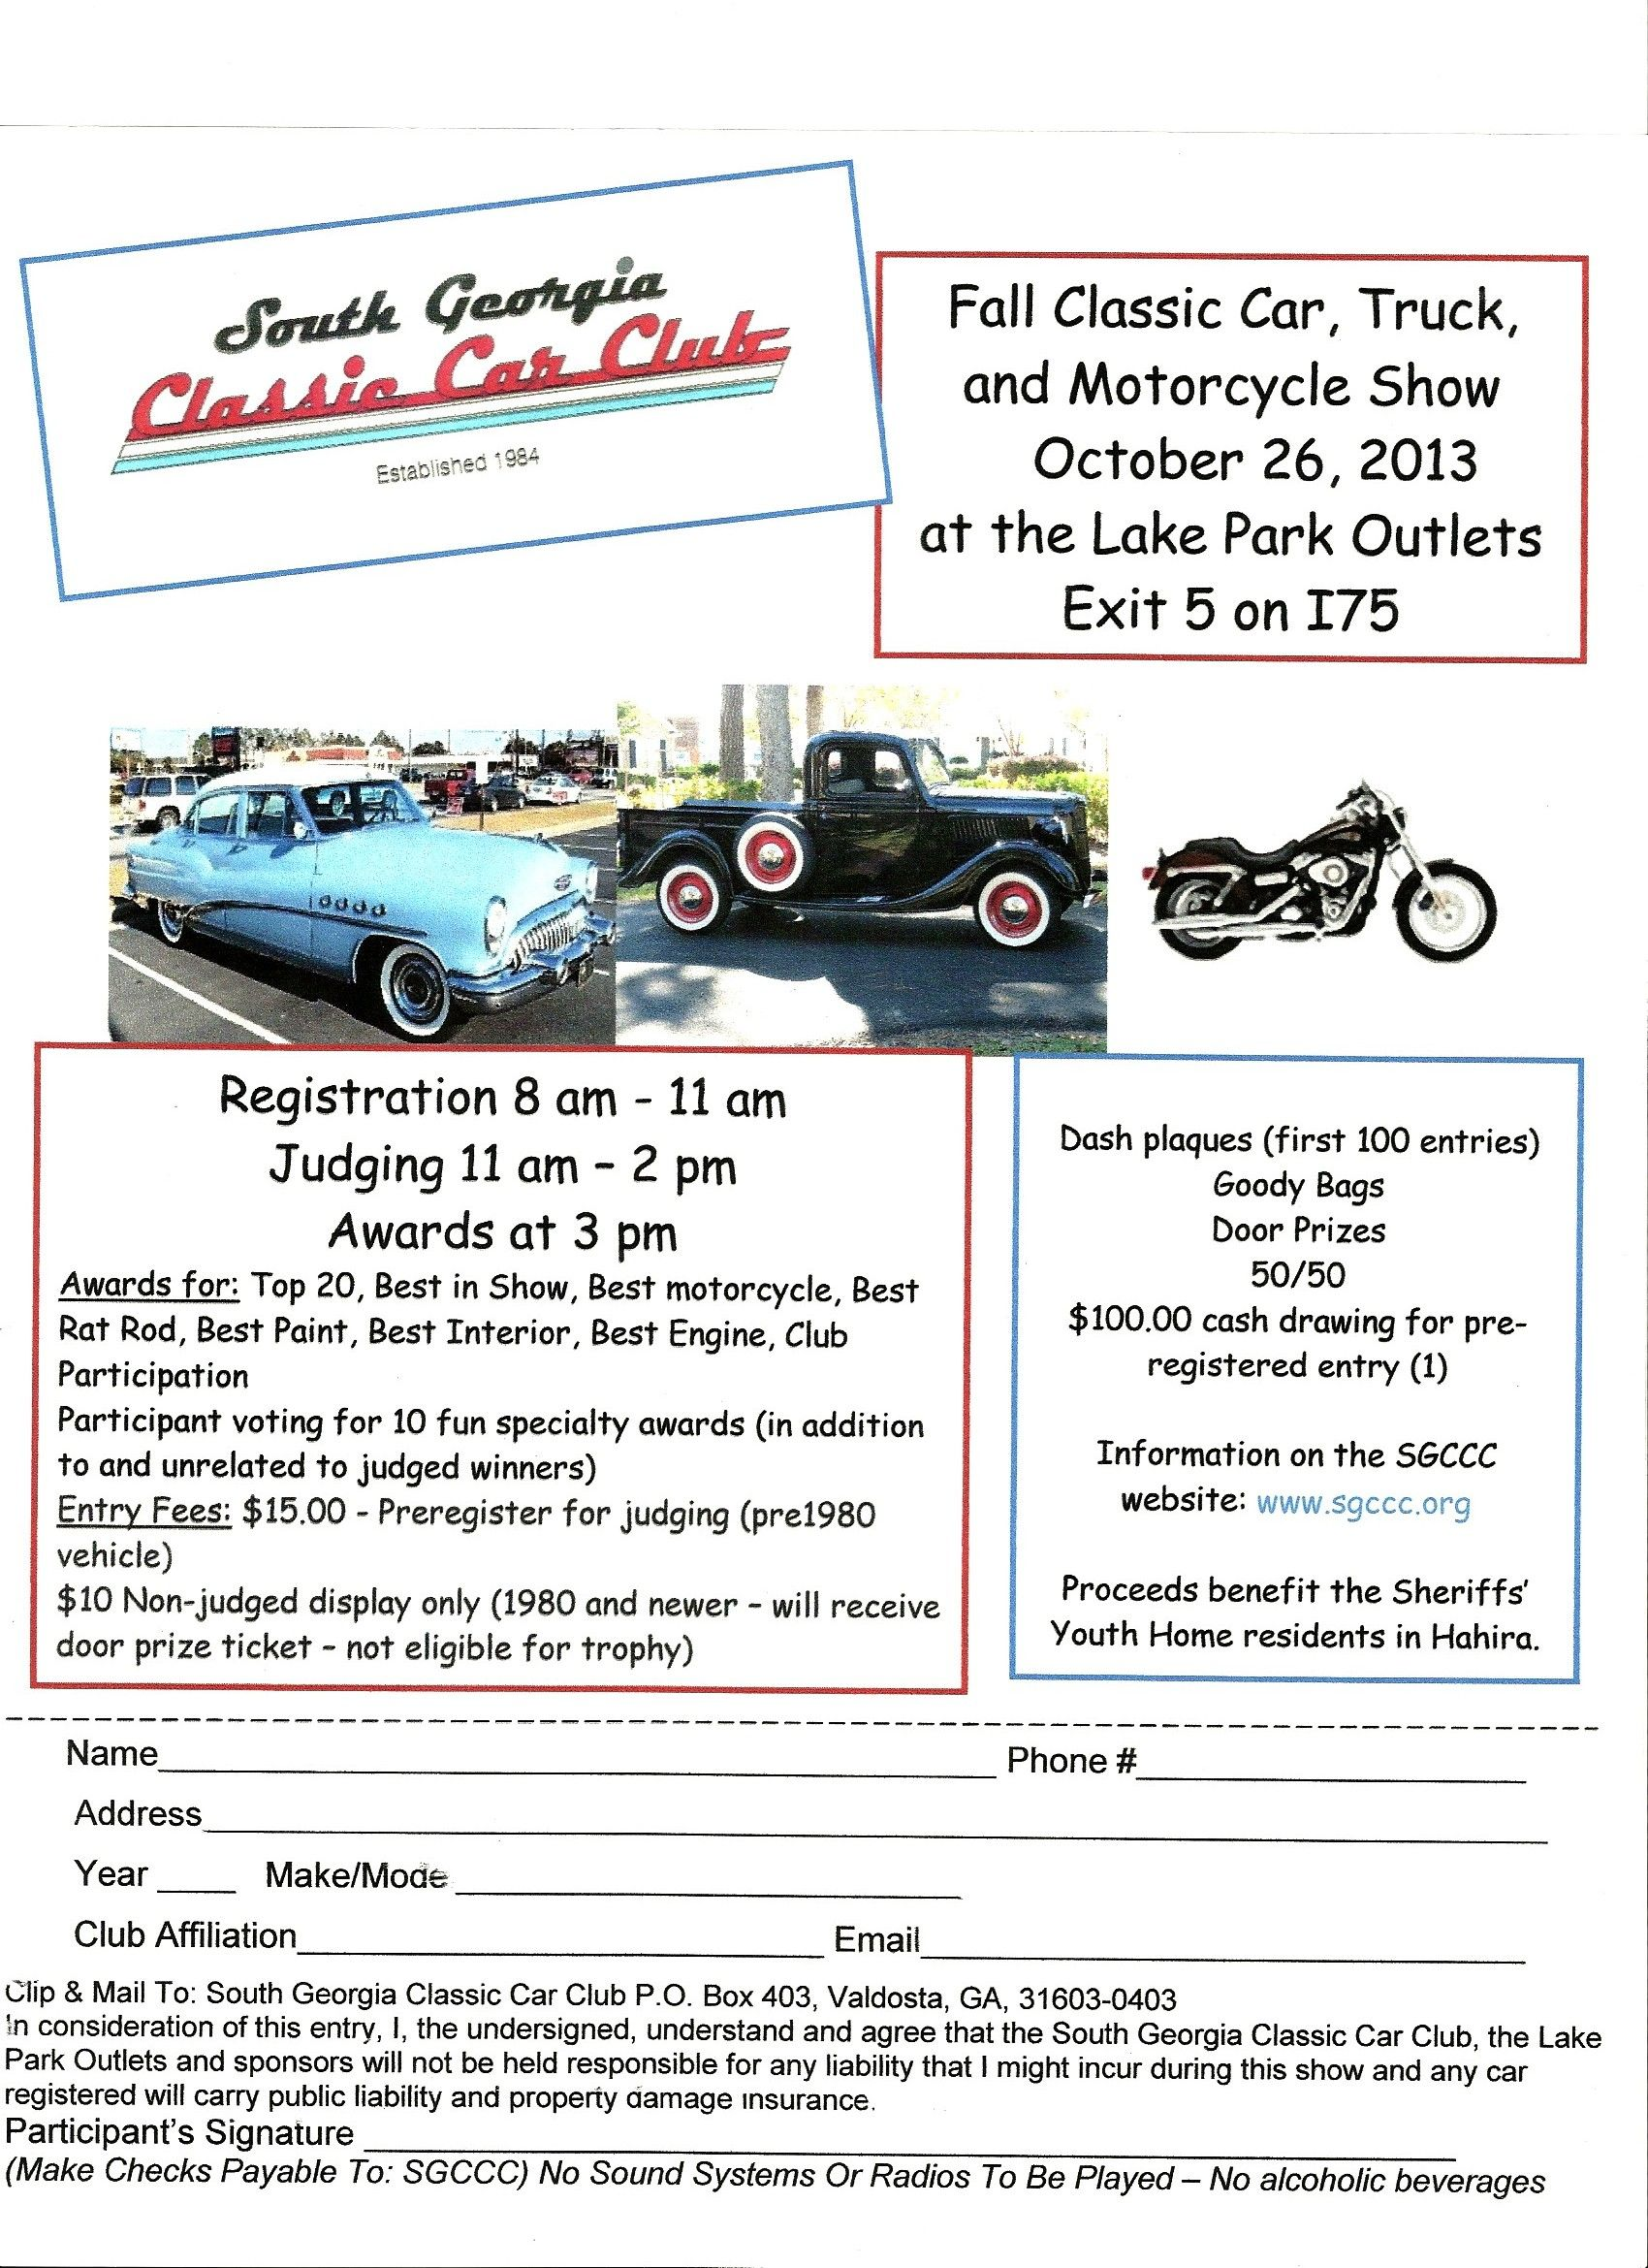 Fall Classic Car Show Motorcycle Show Truck Show Lake - Car show dash plaque display